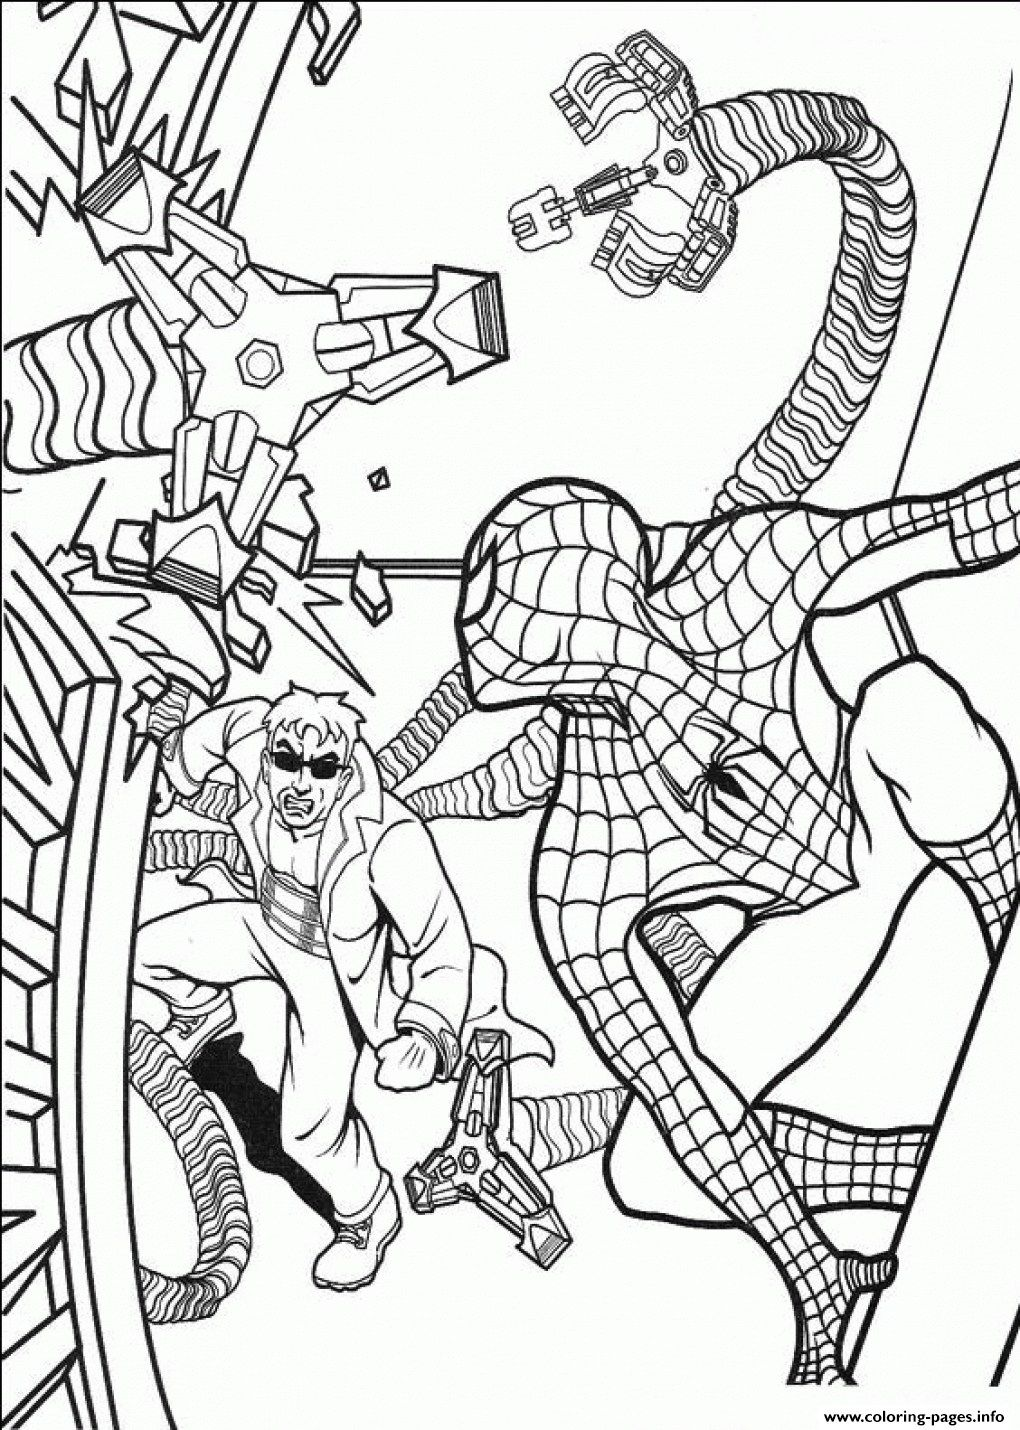 Marvelous Image Of Free Spiderman Coloring Pages Davemelillo Com Spiderman Coloring Cartoon Coloring Pages Halloween Coloring Pages